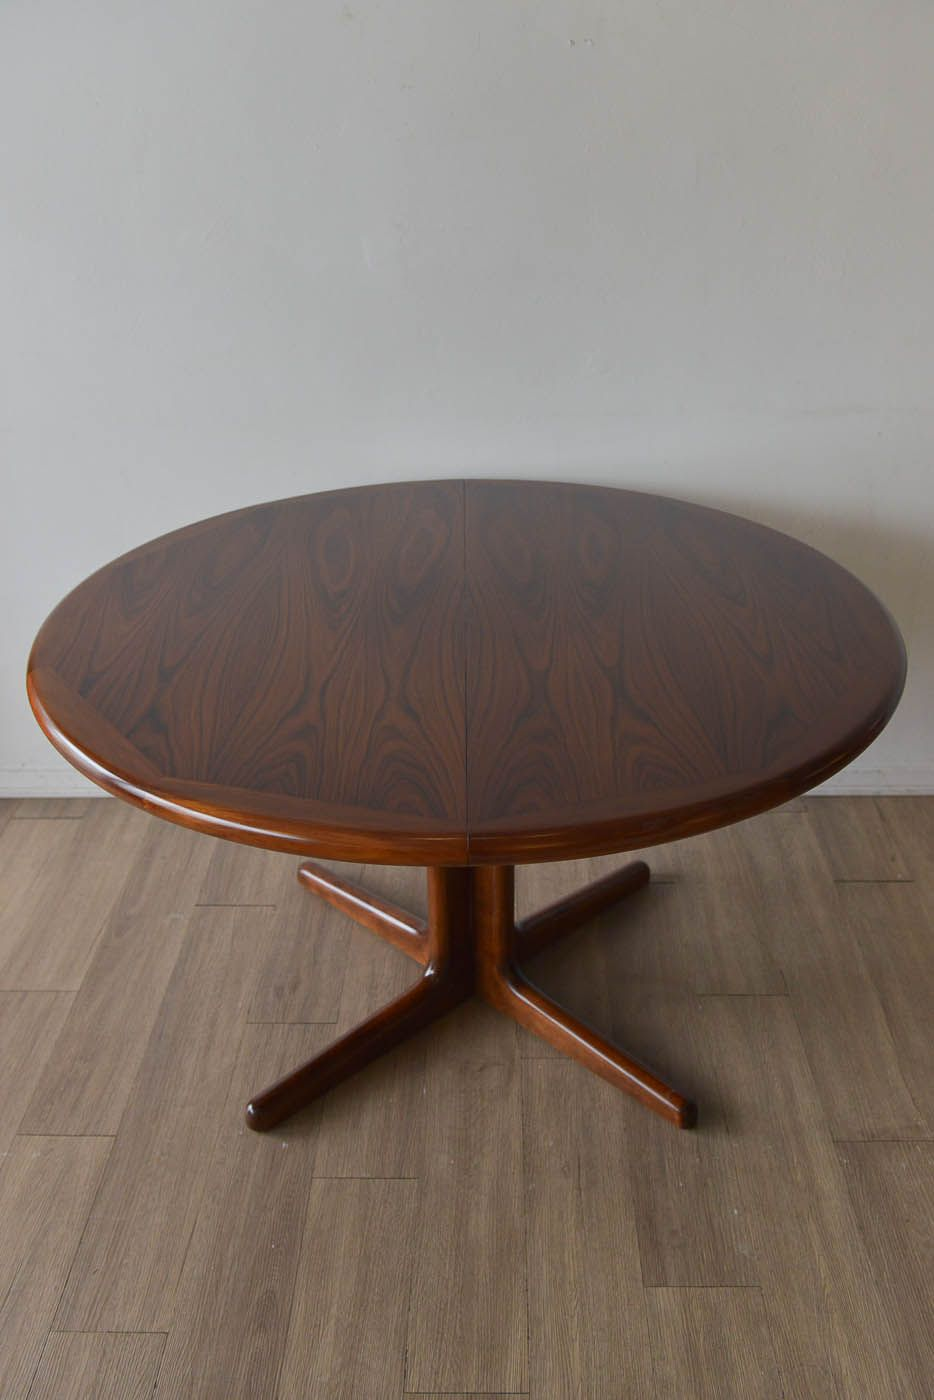 Danish Rosewood Dining Table By Dyrlund of Denmark Includes 2